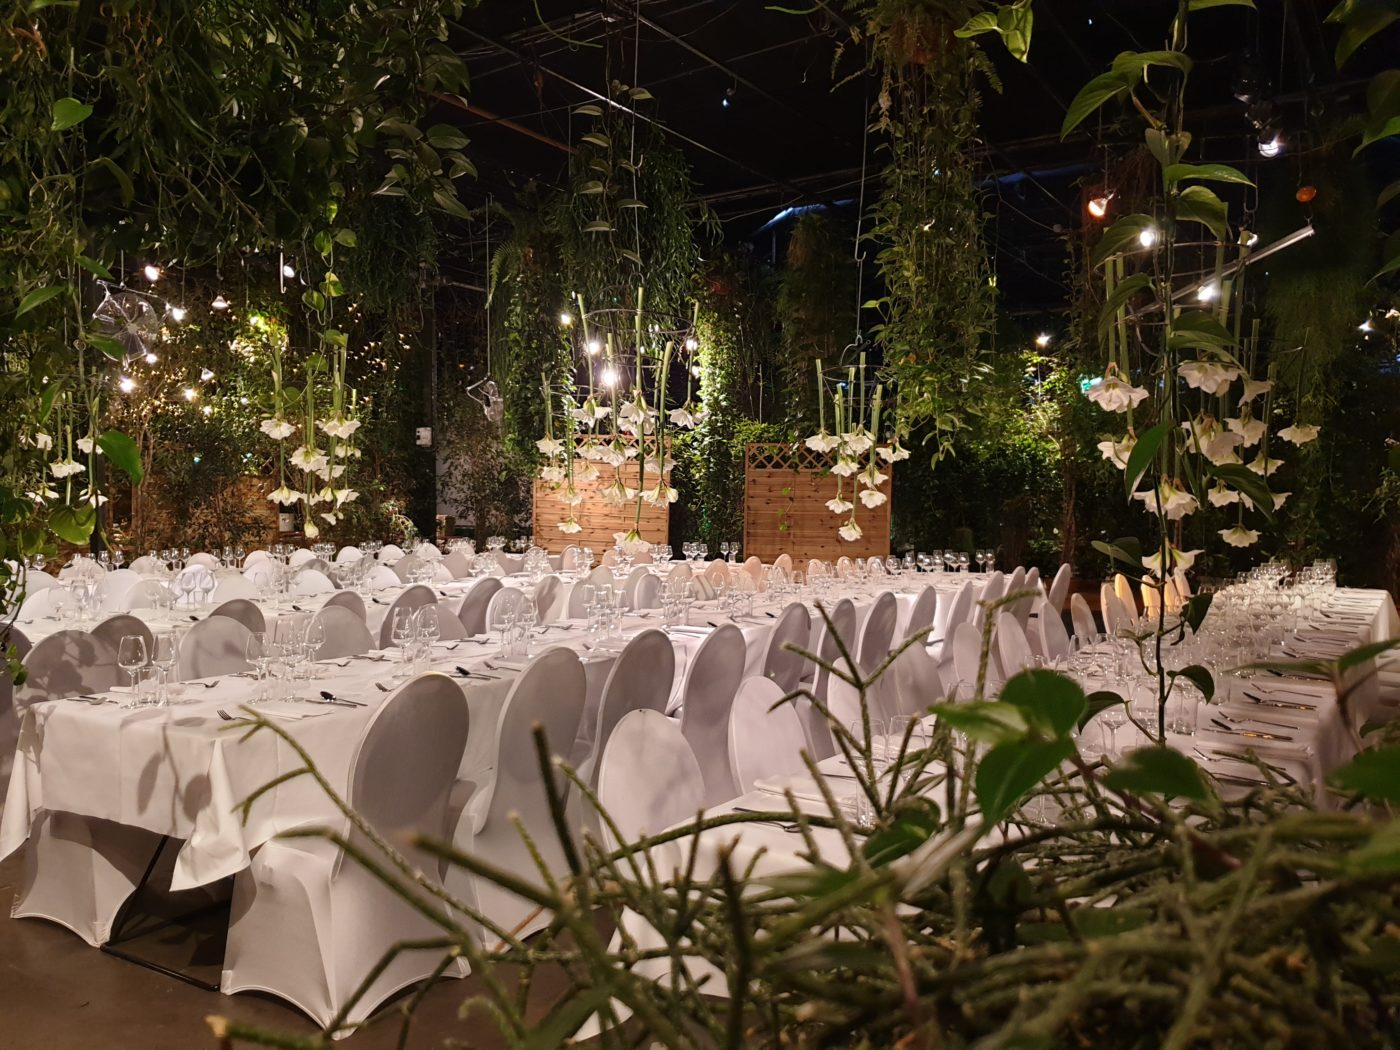 the arendshoeve the garden of amsterdam event location anniversary celebration